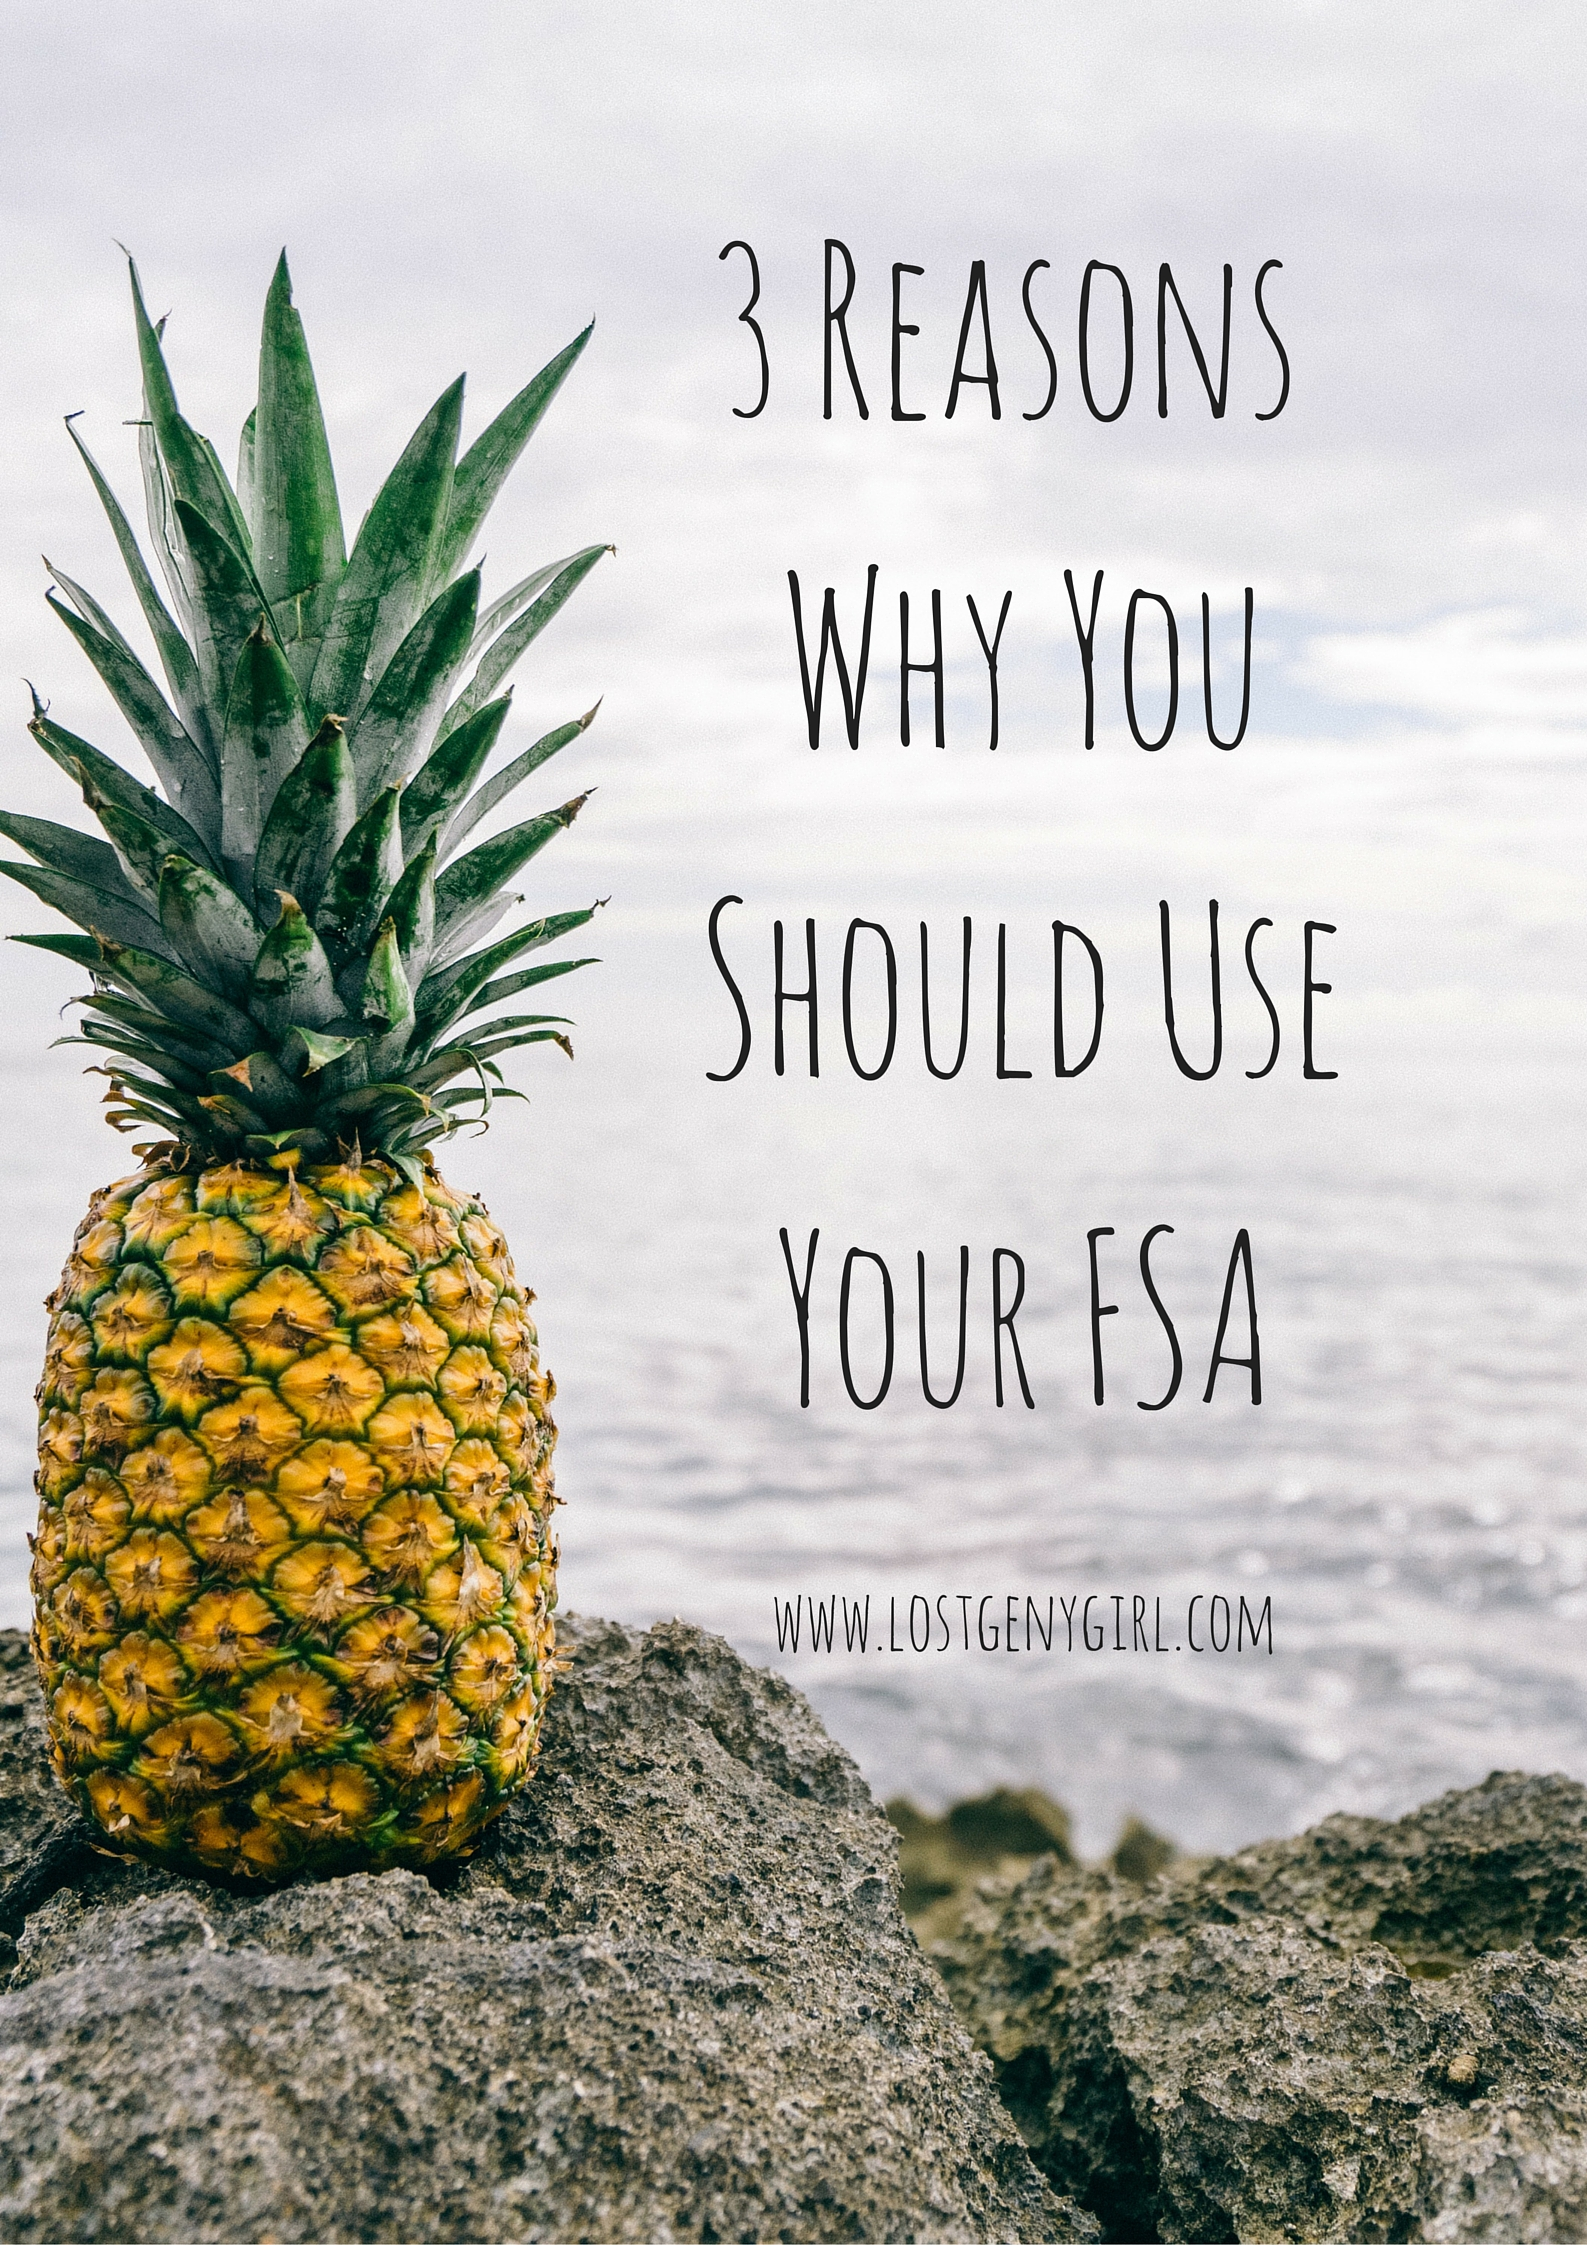 3 Reasons Why You Should Use Your FSA